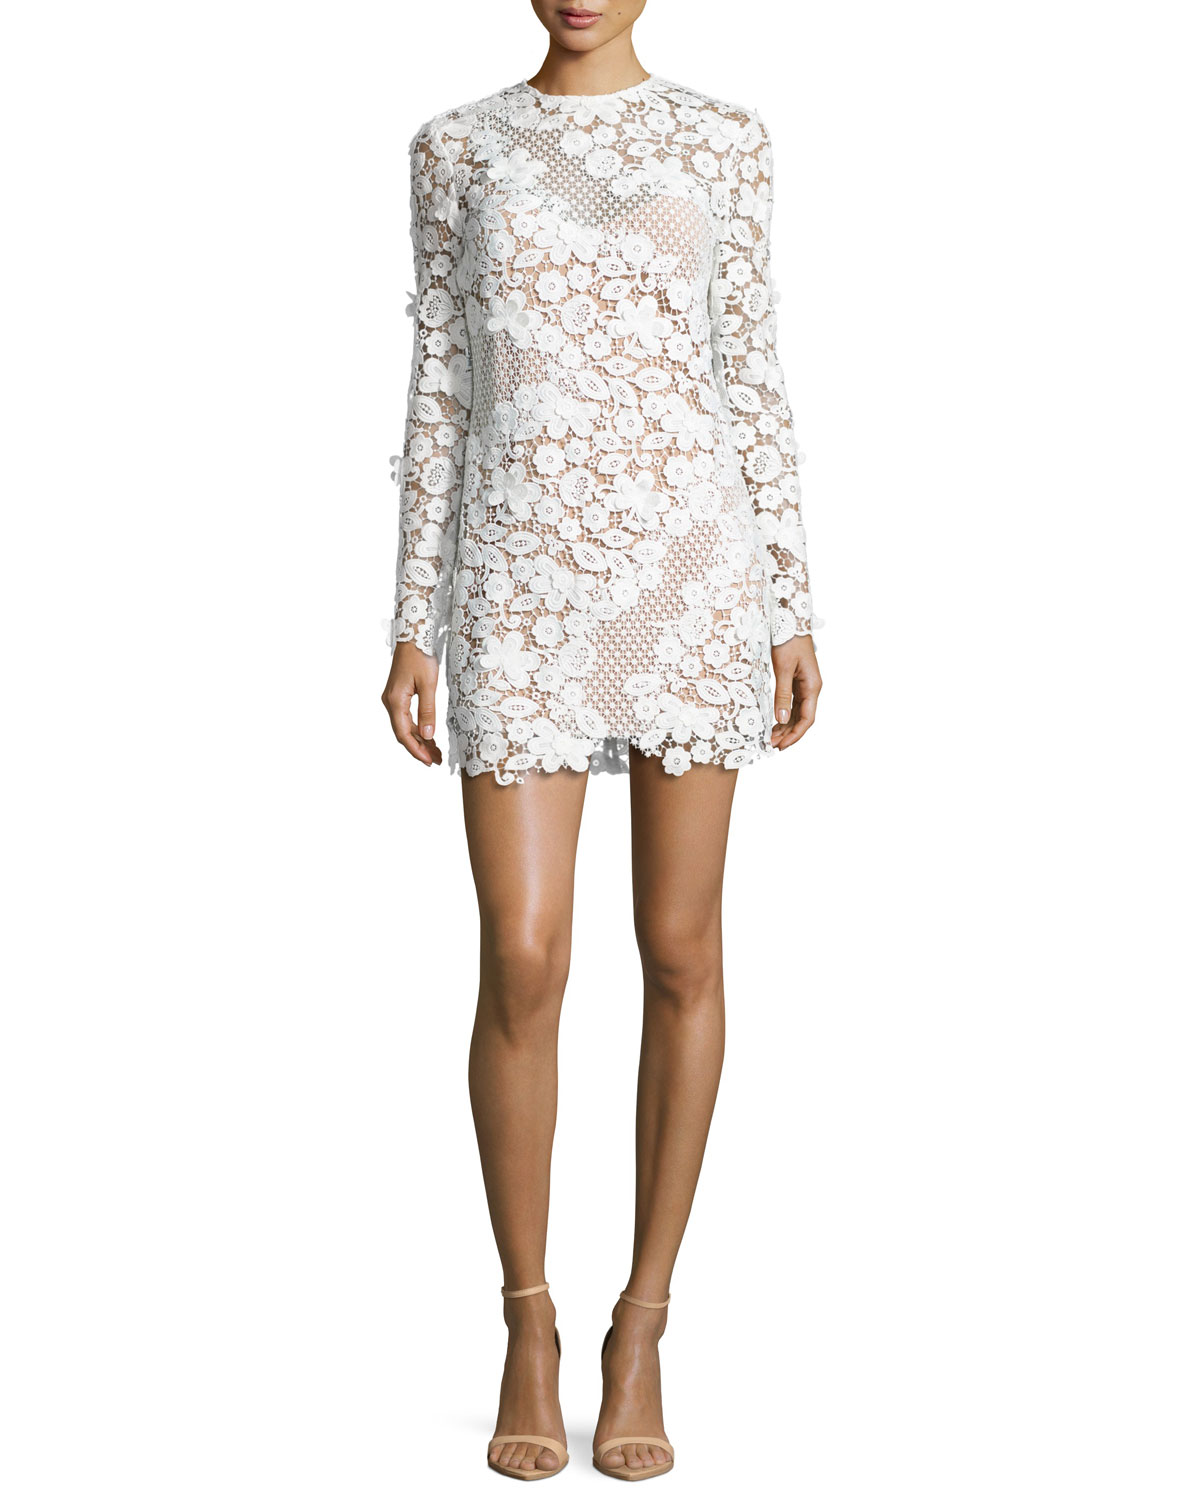 b24ce3b8a2f Self-Portrait 3D Floral-Lace Mini Dress